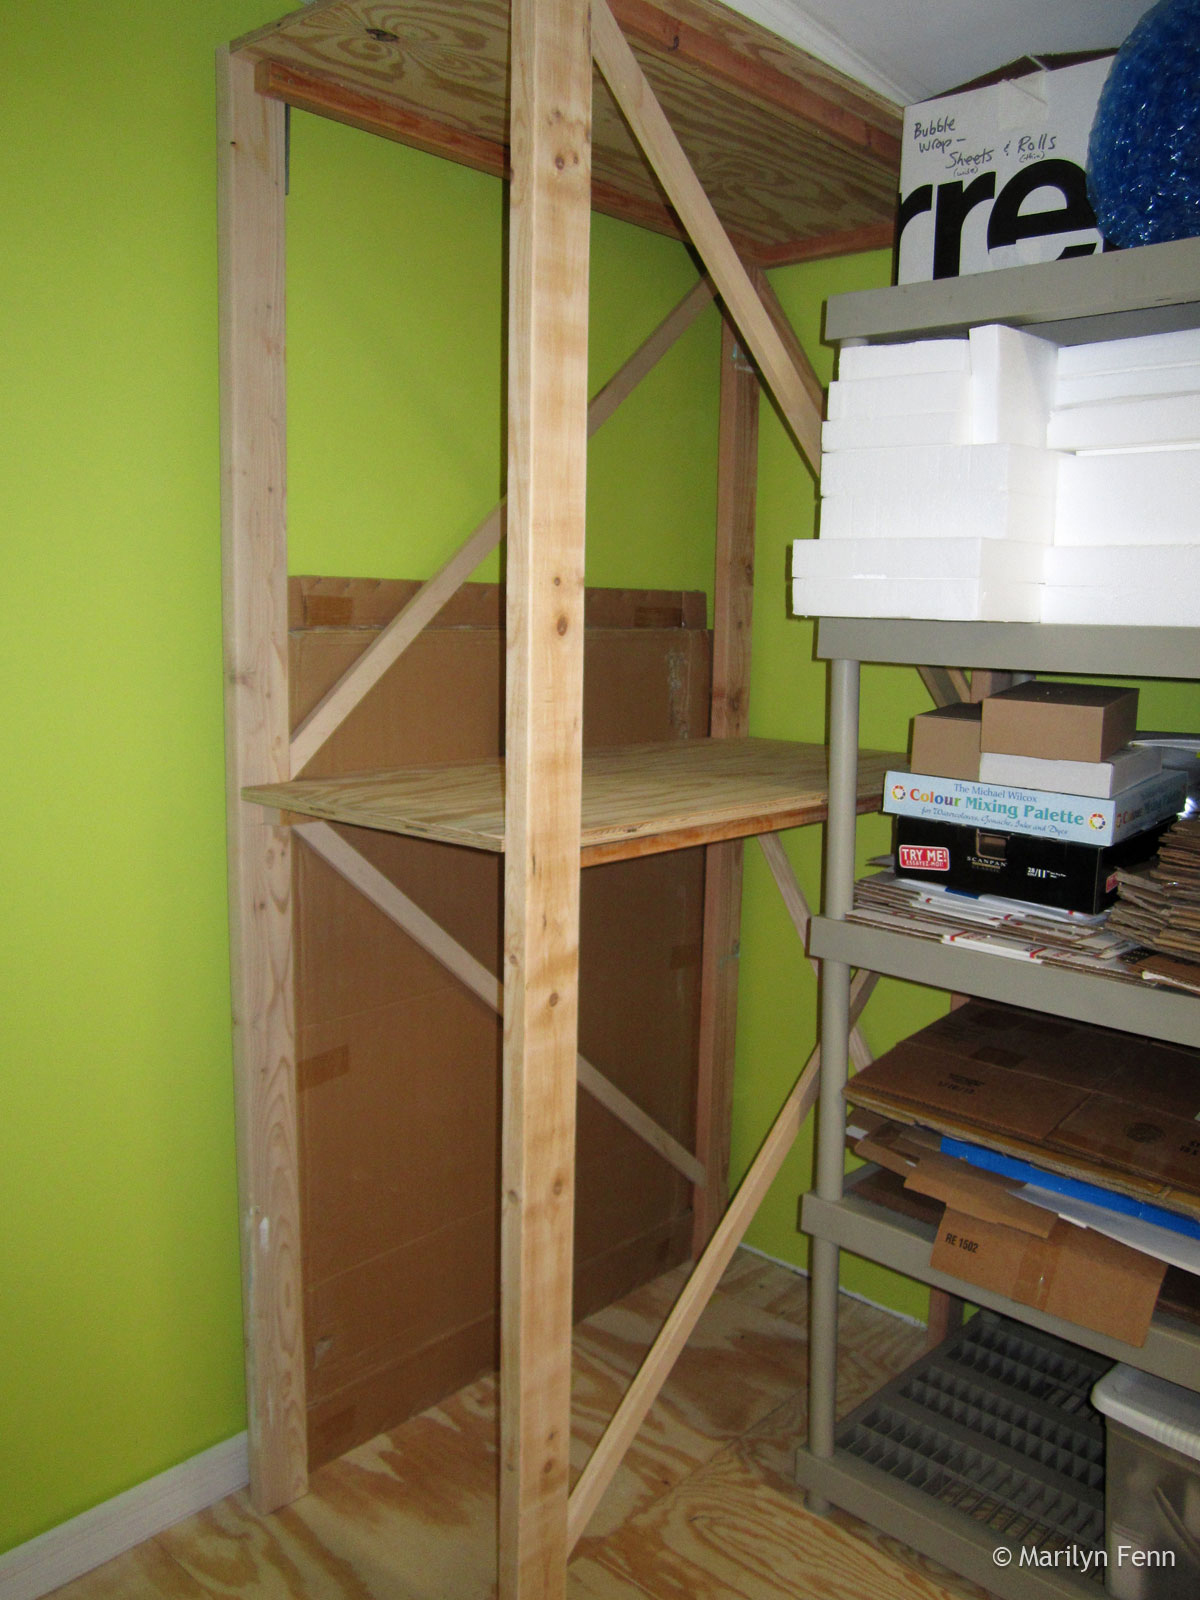 Box storage shelving completed